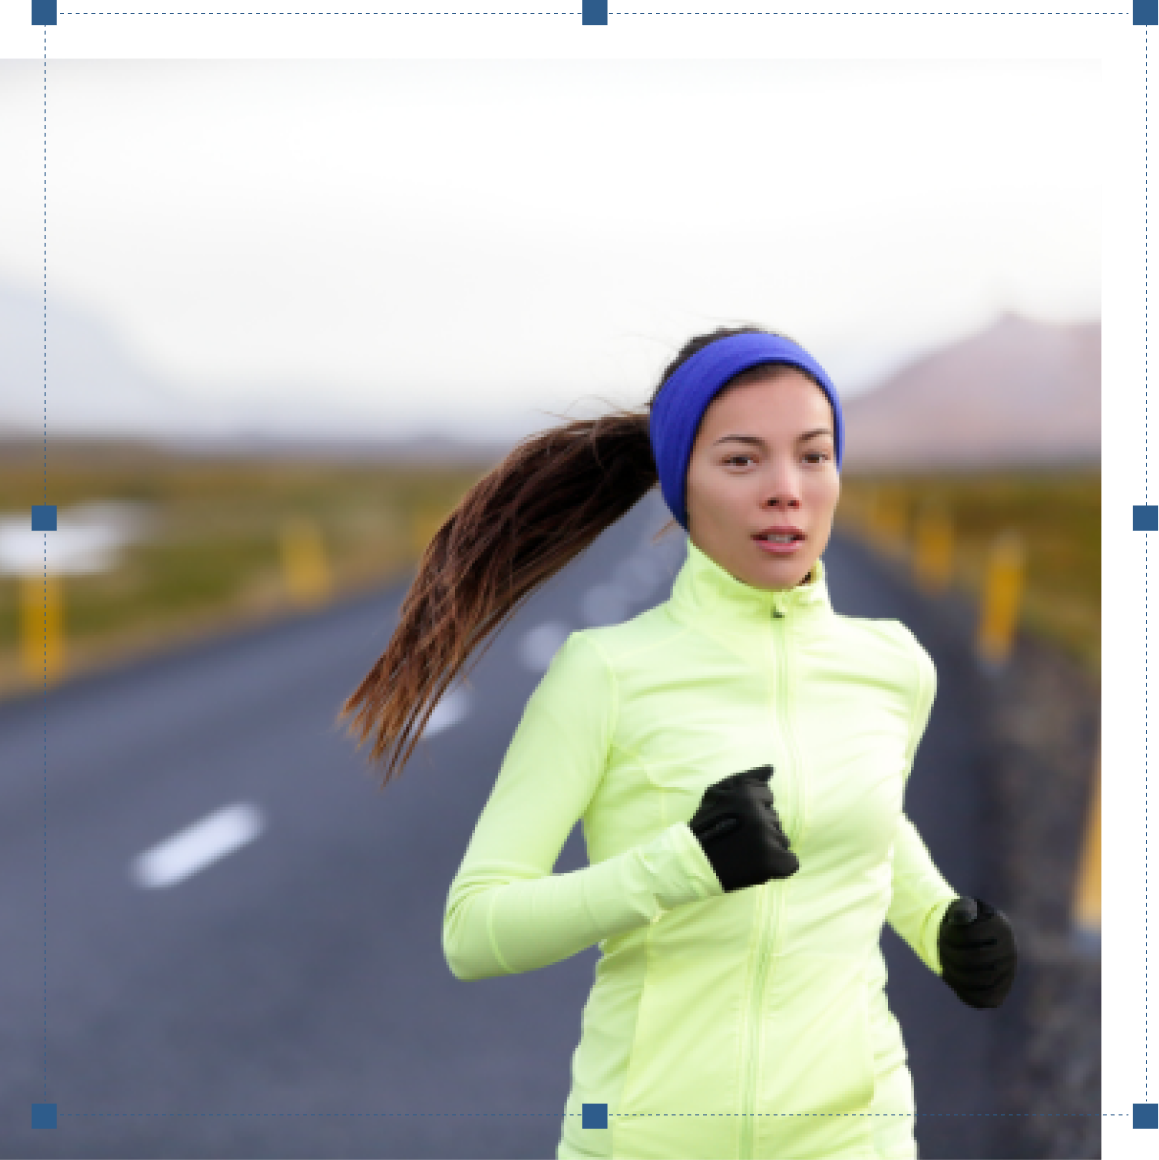 A woman runner ina light green jacket and pruple headband and blac gloves, on a long road with patches of snow in the side